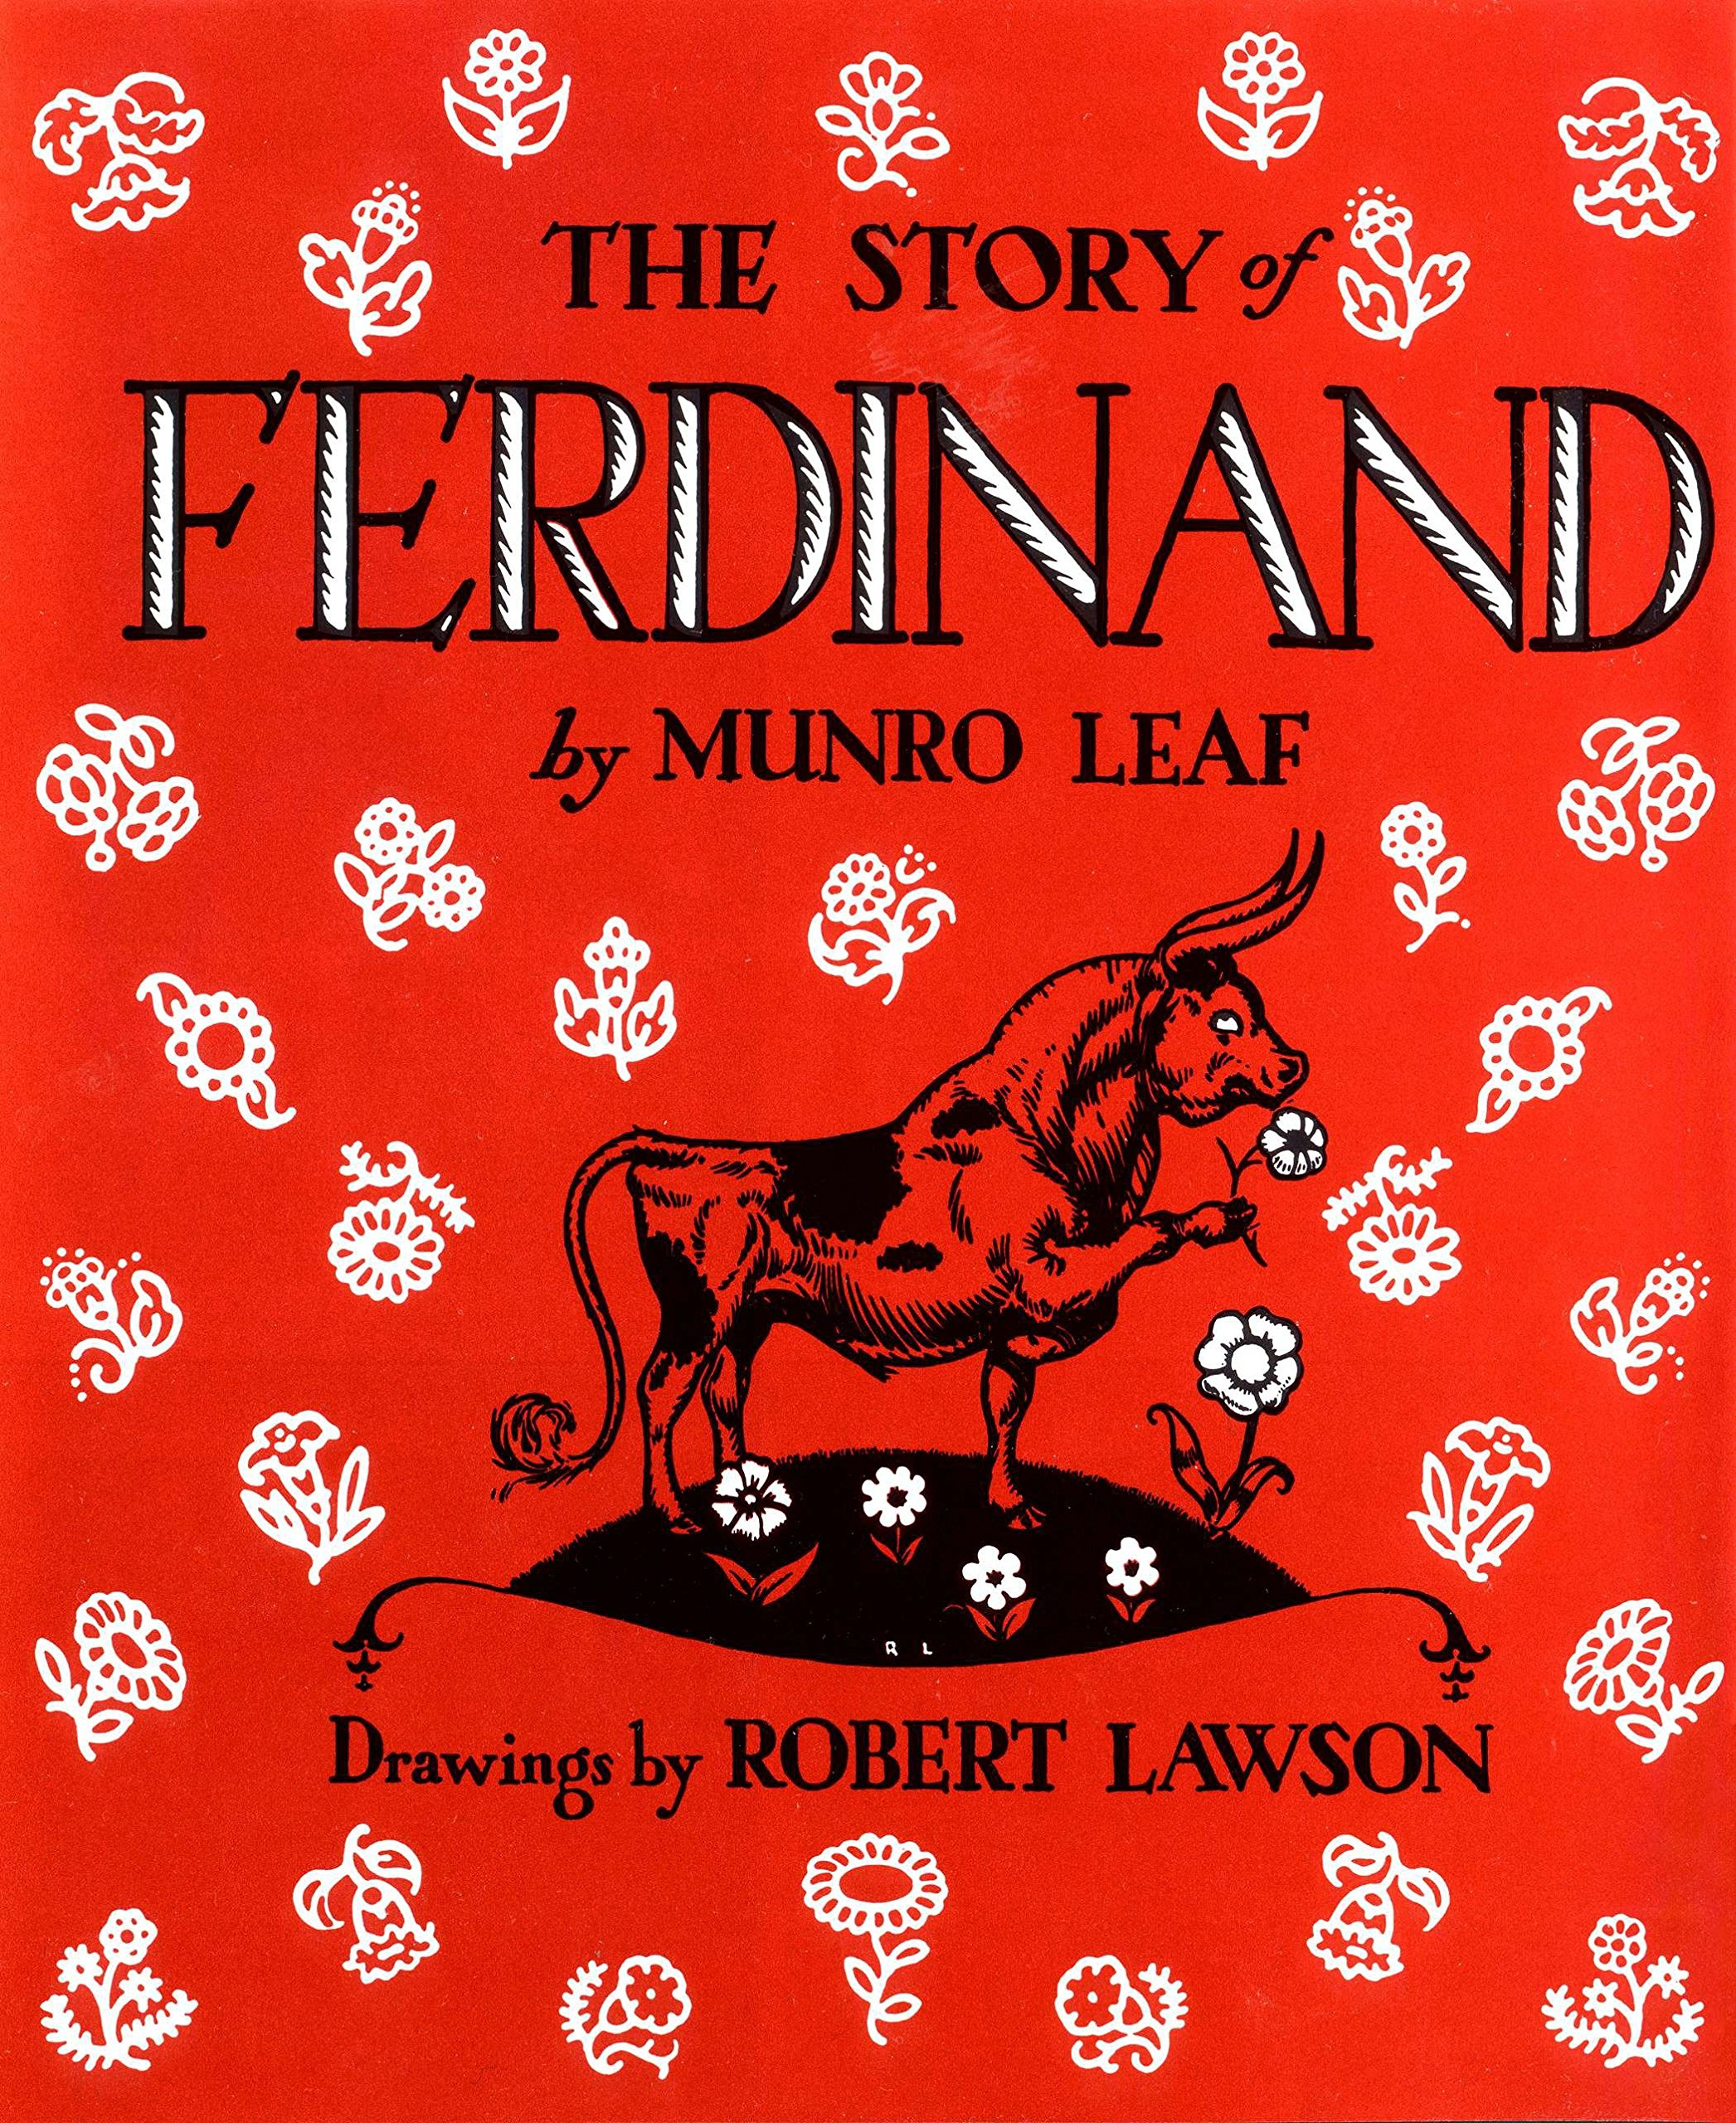 The Best Picture Book Characters of All Time - The Story of Ferdinand.jpg